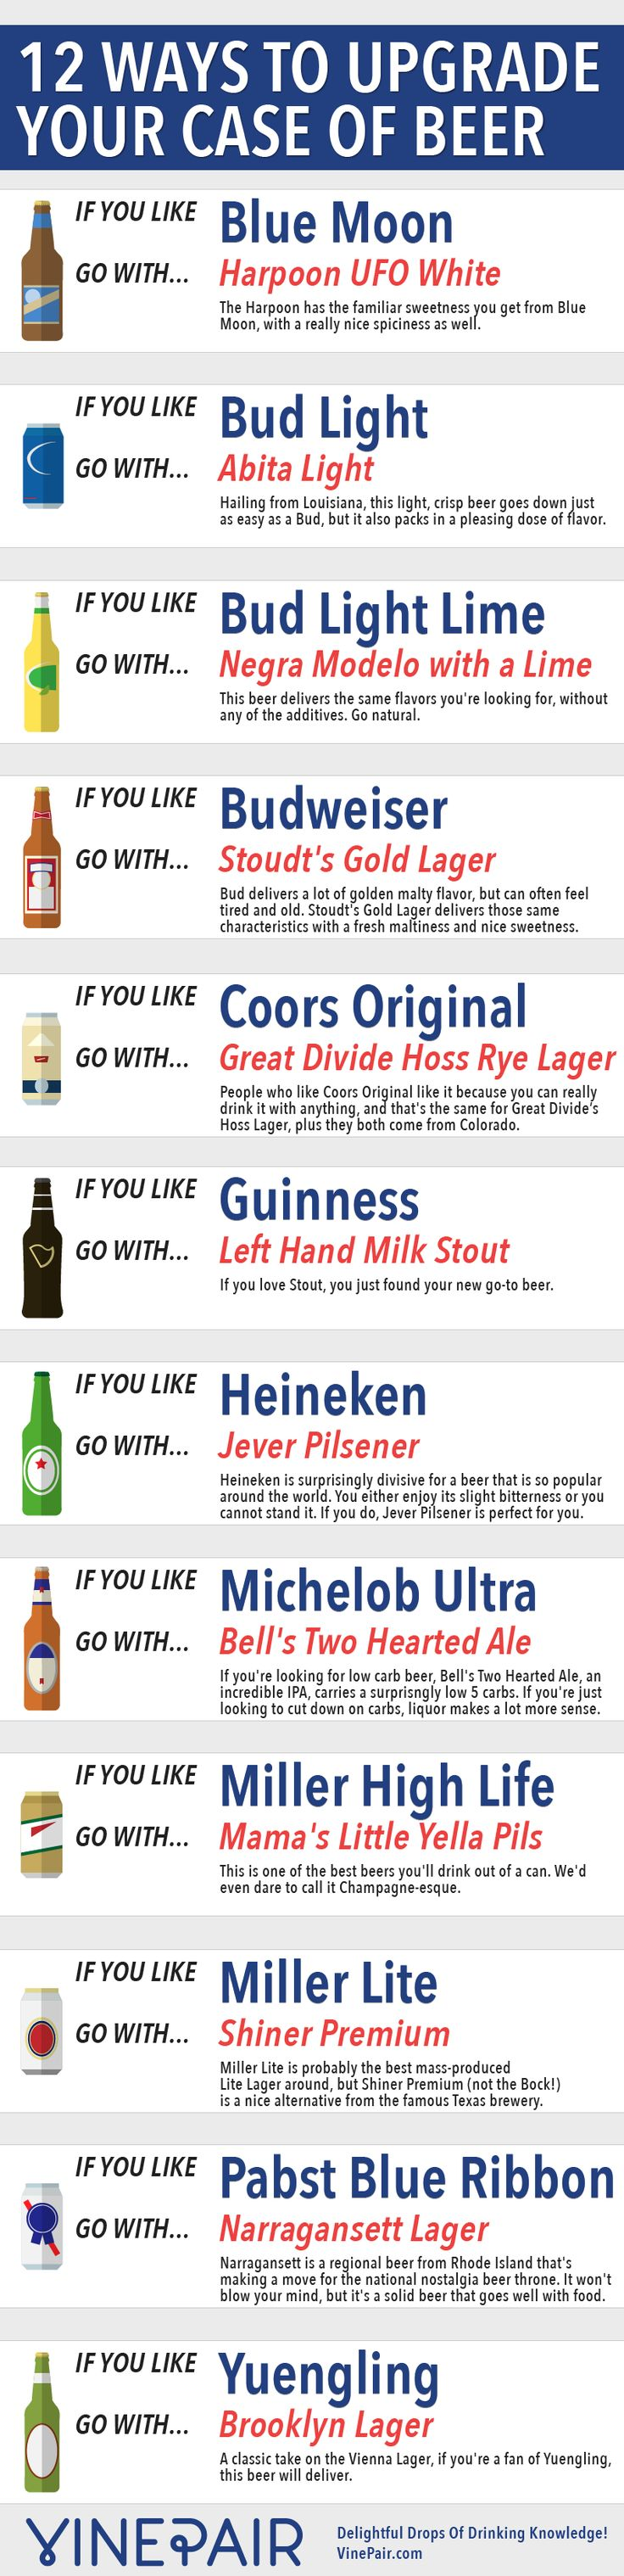 Upgrade 12 Popular Beers With These Alternate Suggestions - Infographic